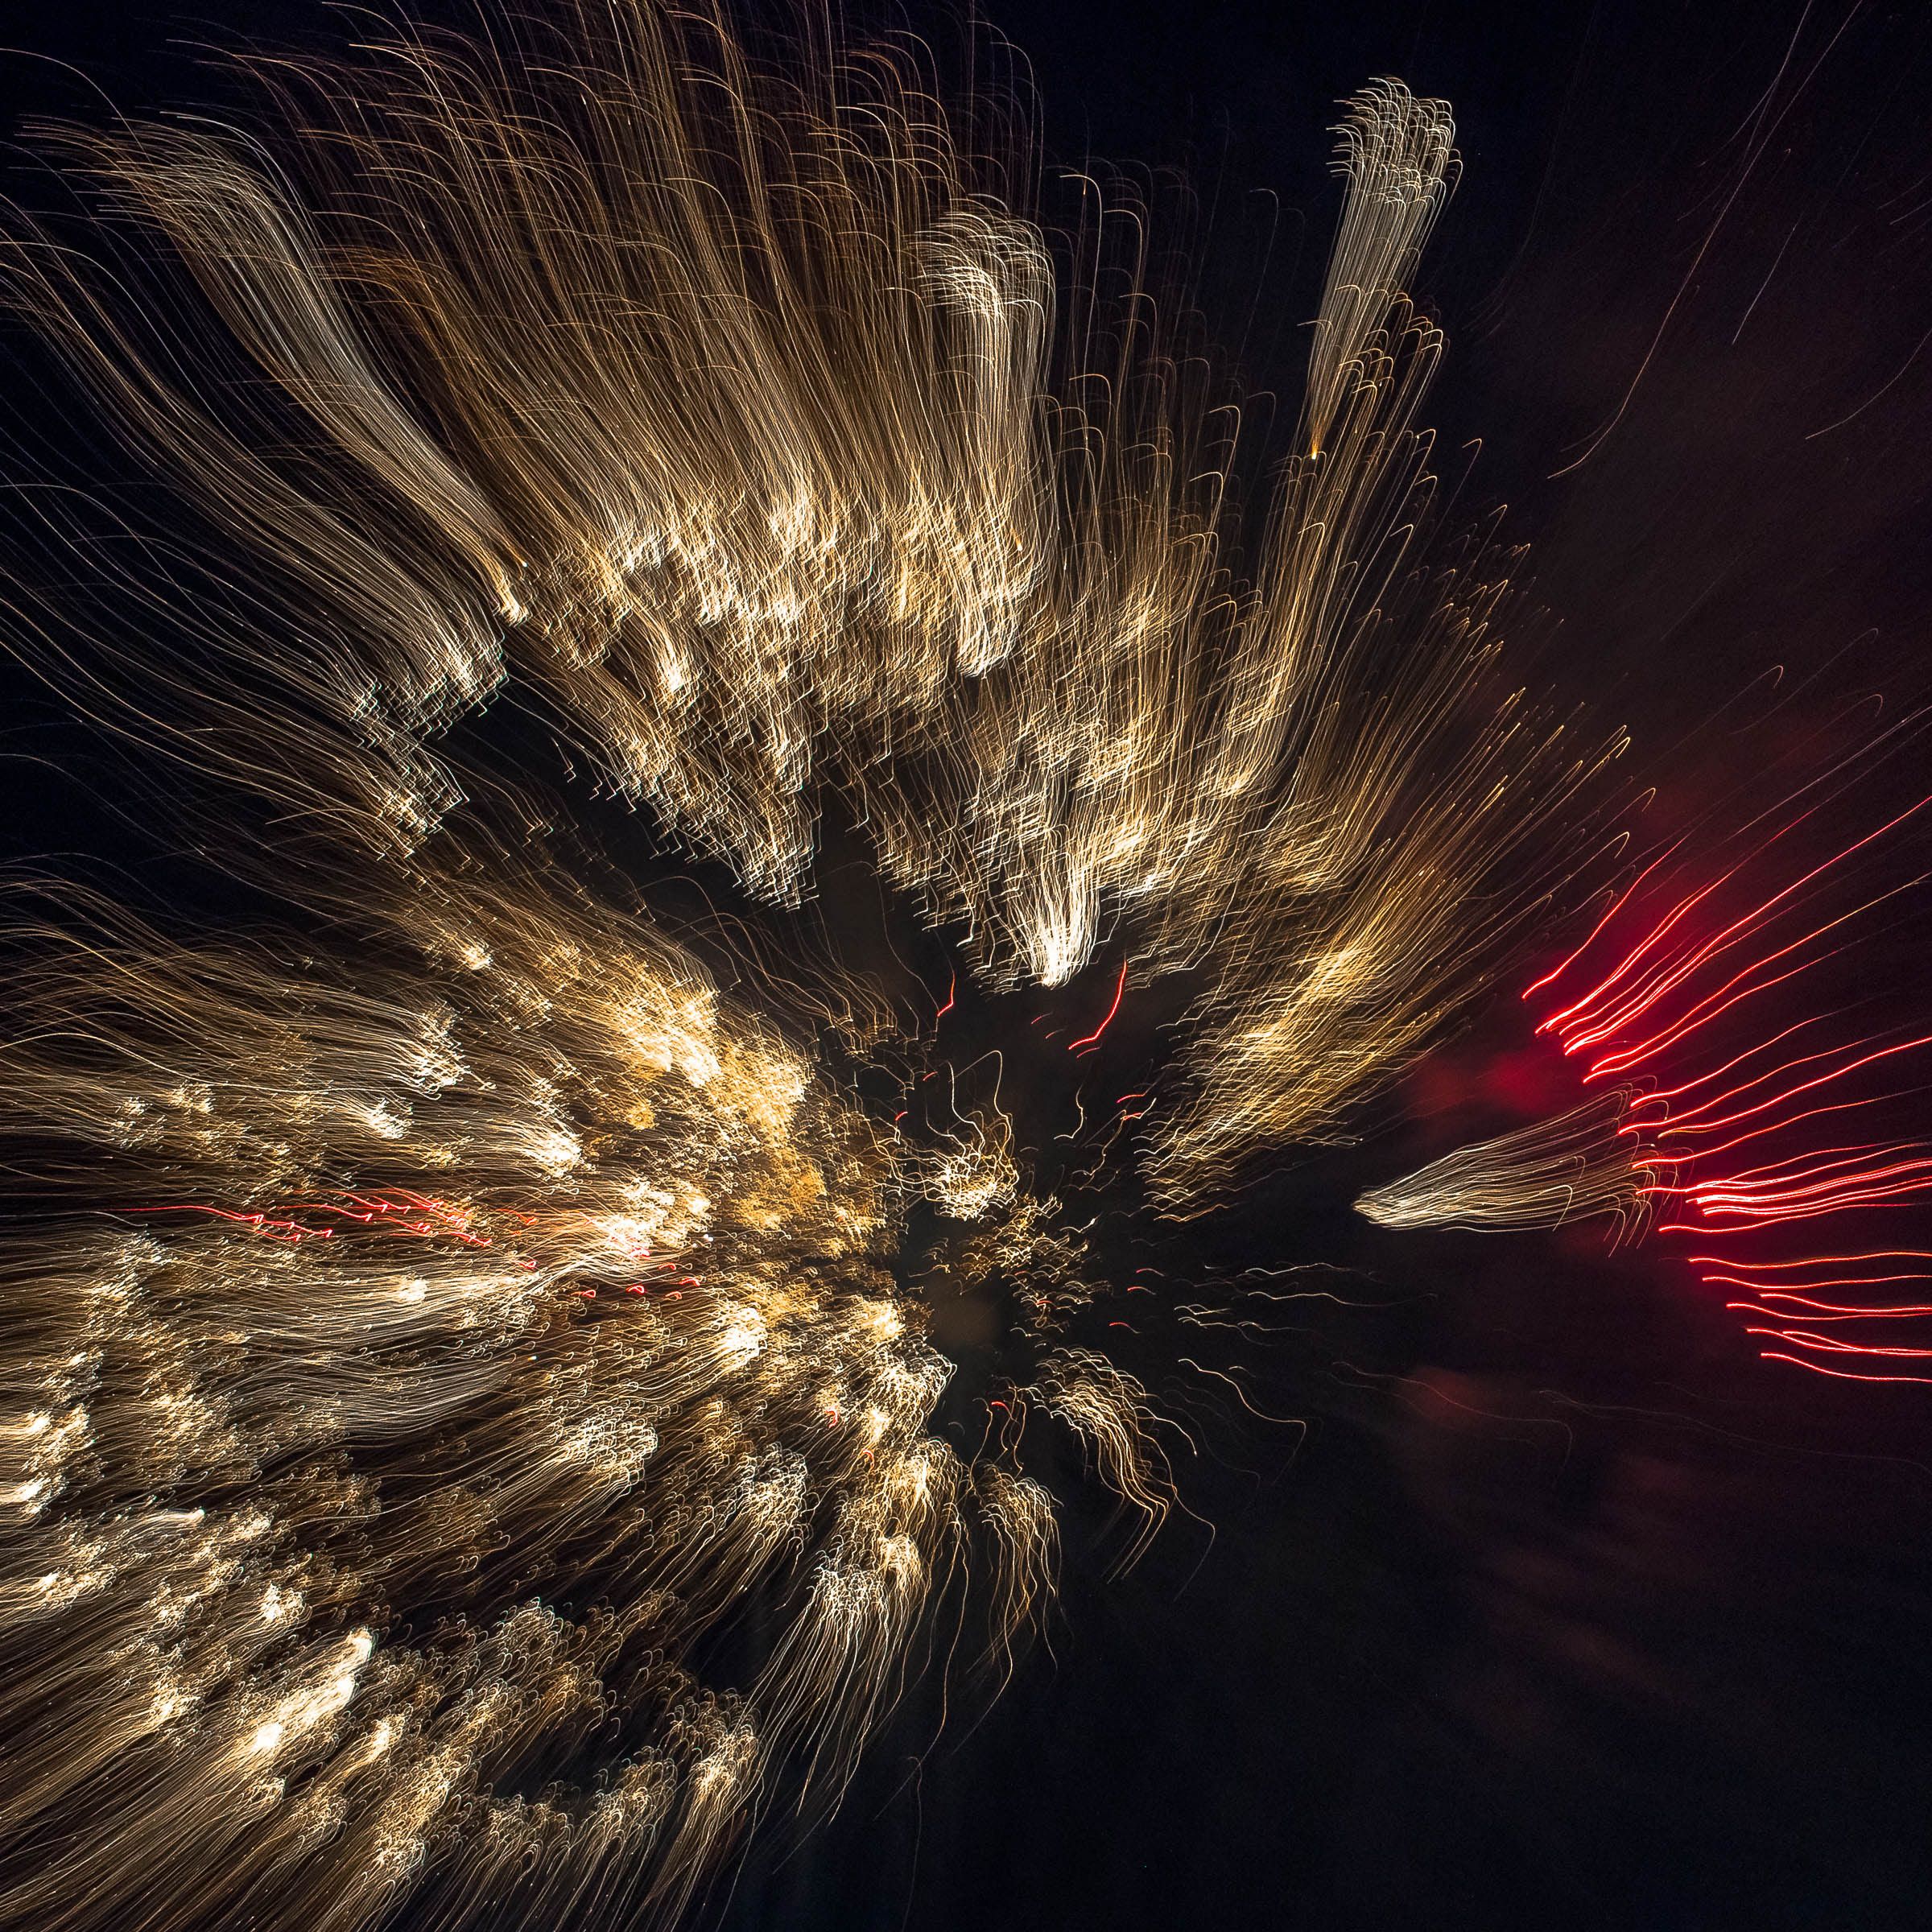 Fireworks Photography Print Chromalux On Alu 20 X 20 Cm 8 X 8 In